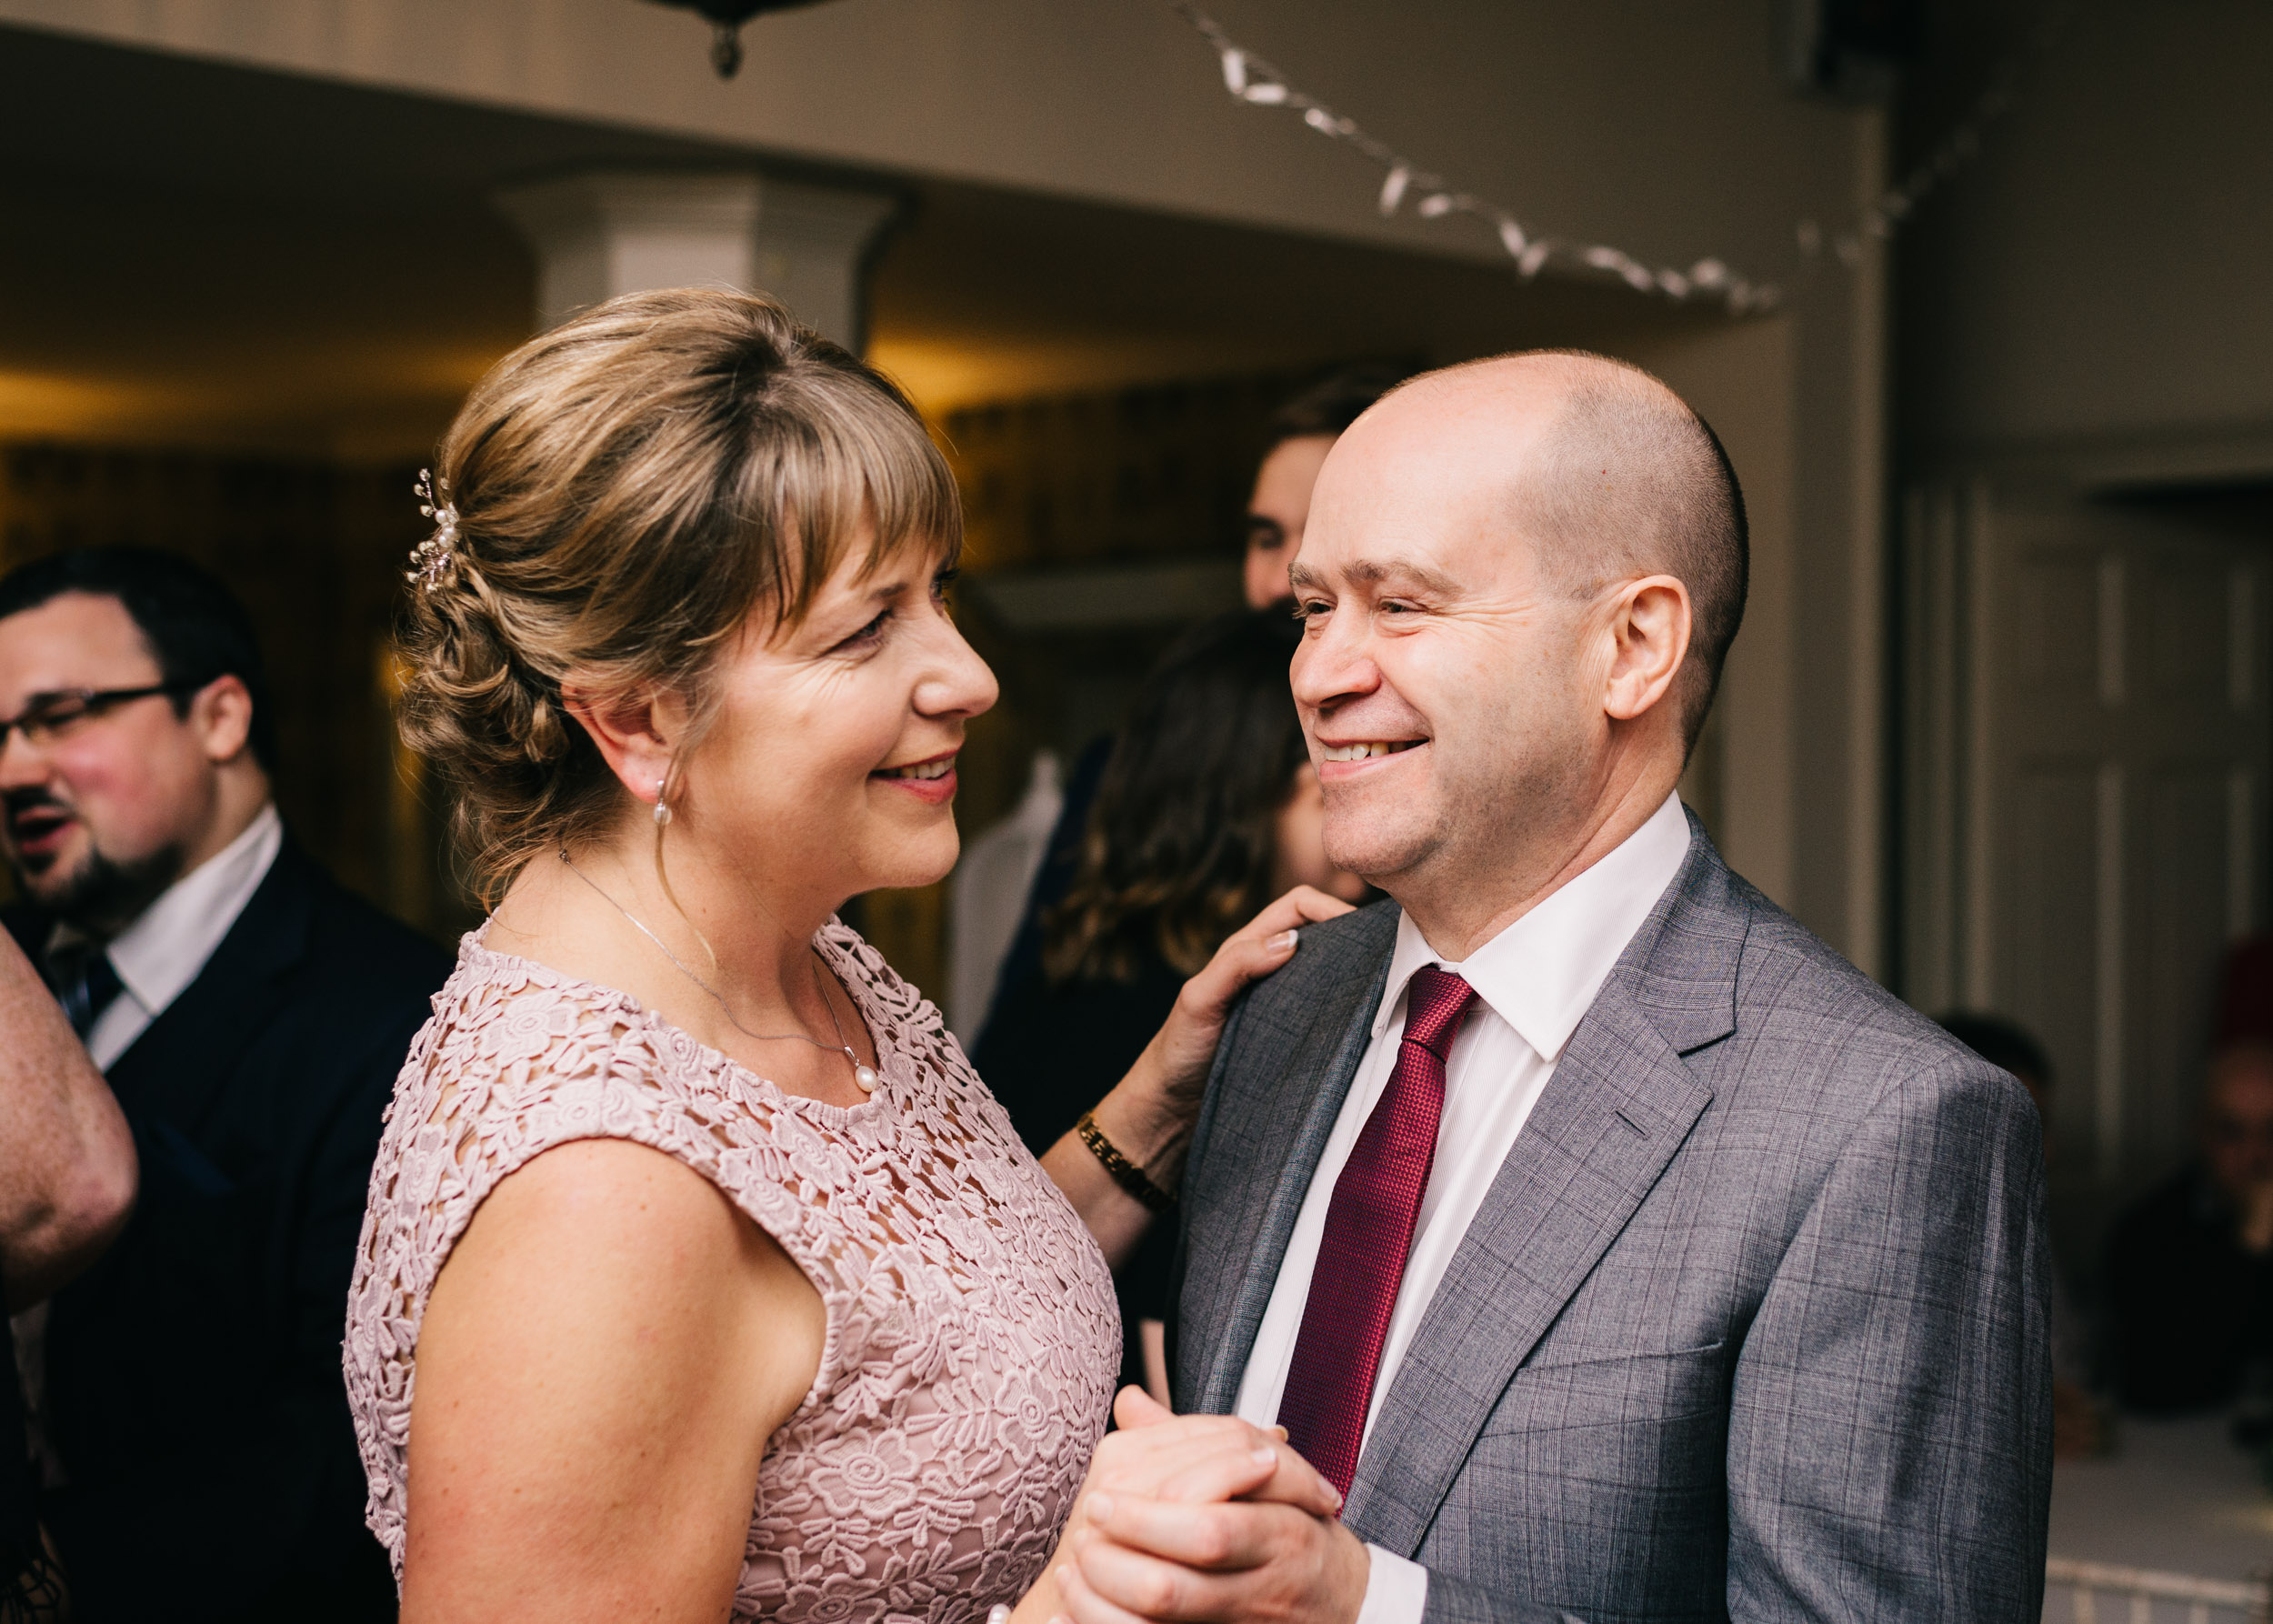 Shireburn Arms Wedding Hurst Green, Ribble Valley, Lancashire49